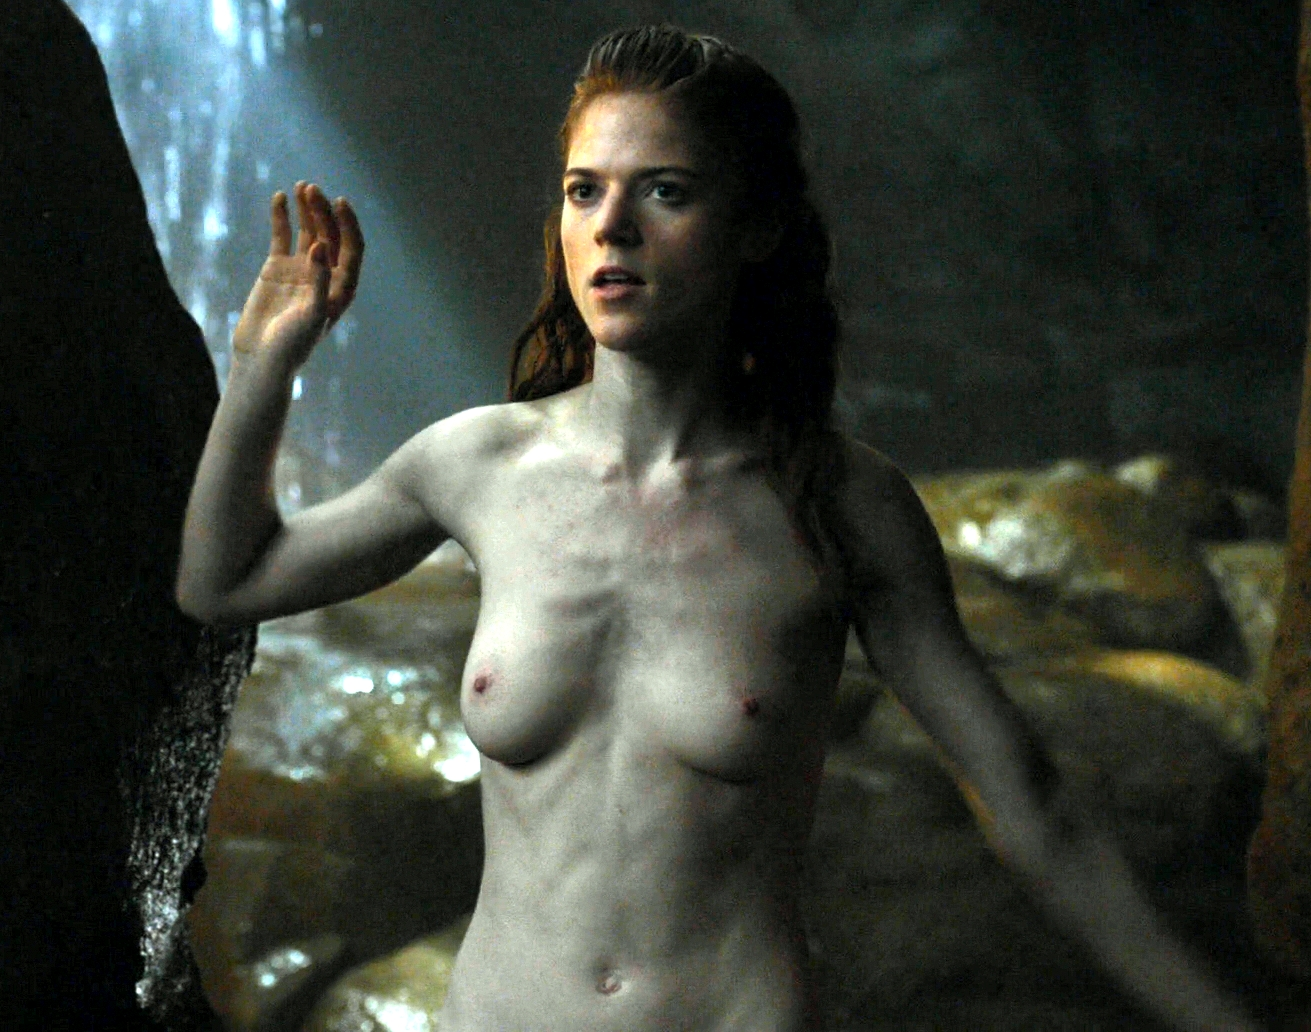 lagertha naked